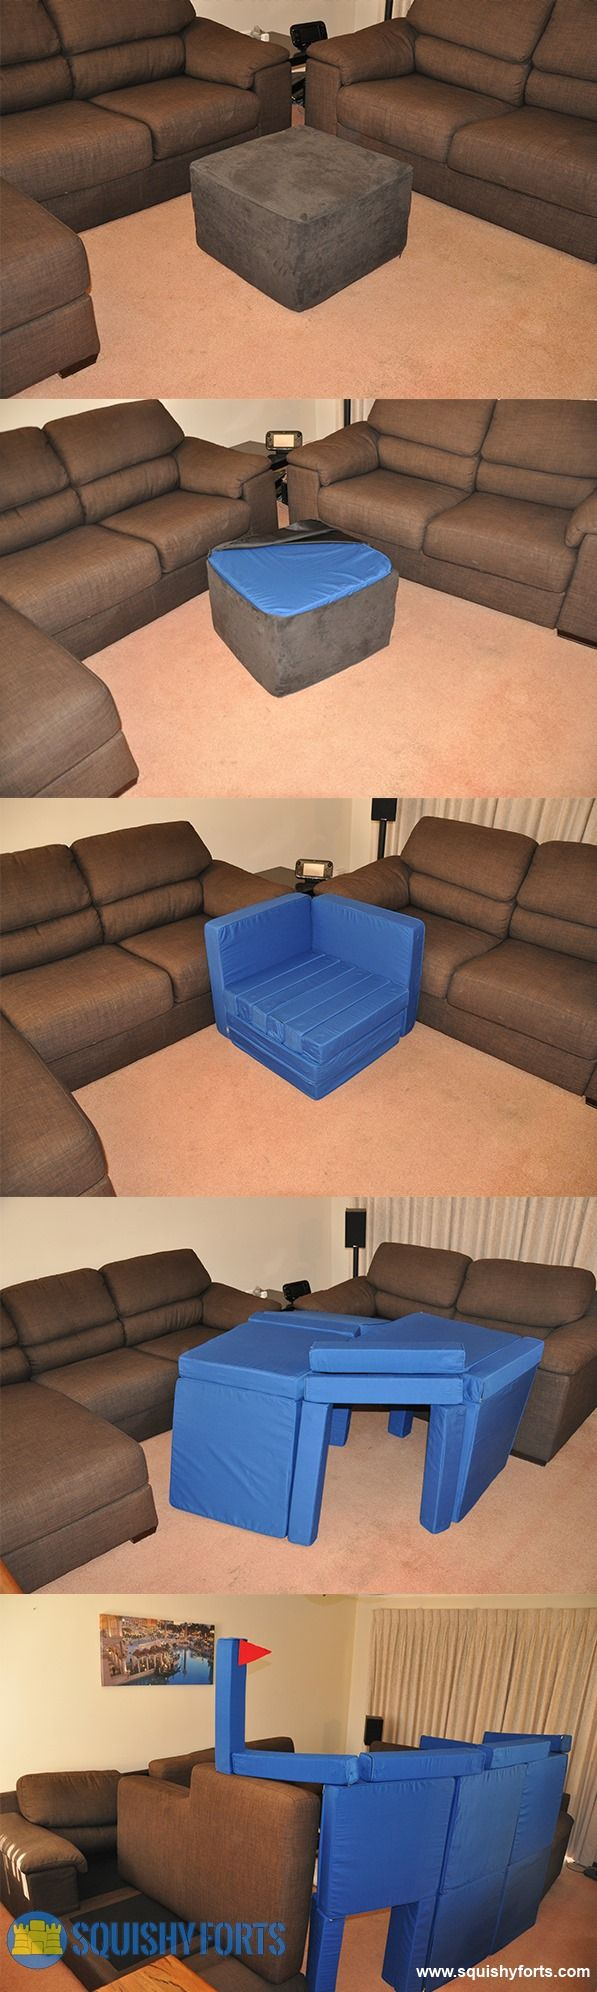 A foot stool that is actually a Pillow Fort Construction kit! Haha.. What! Genius!